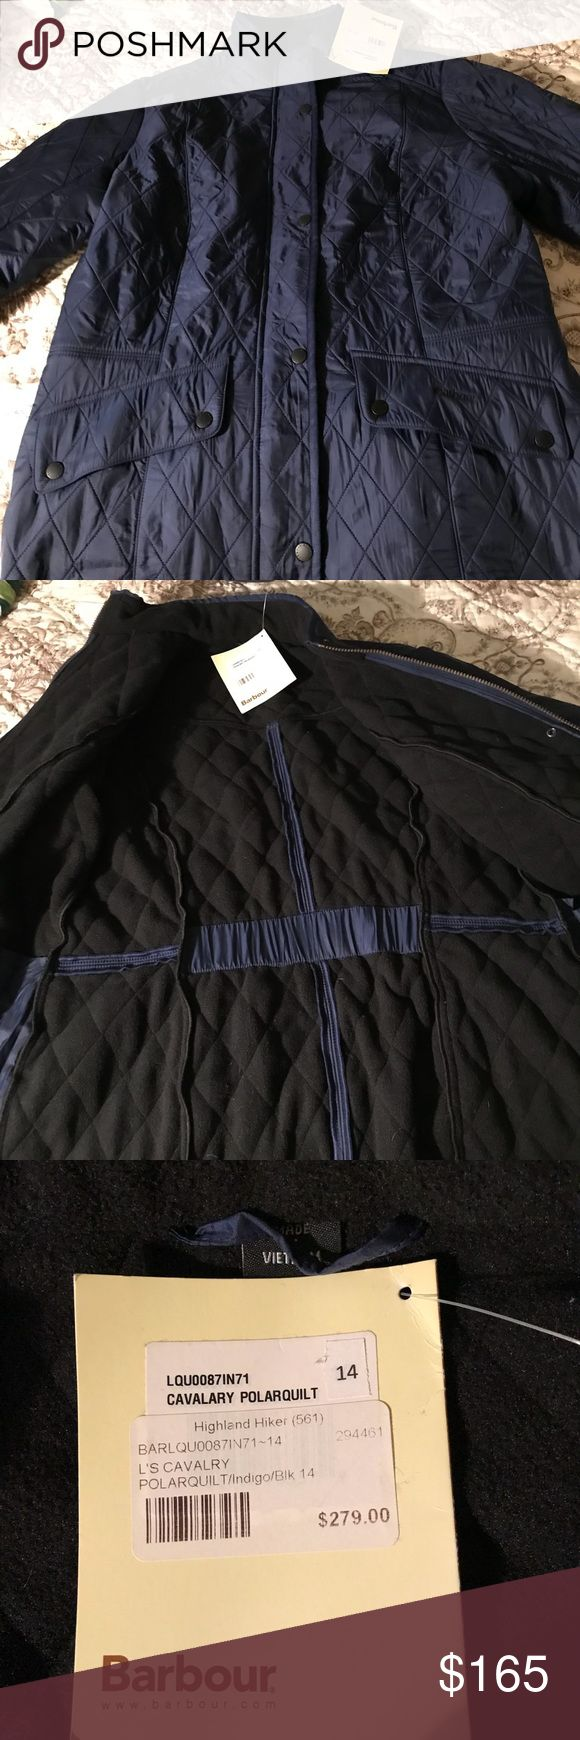 Barbour Quilted Jacket Brand new with tags. One mark on it, lotion busted in storage container it was in, I'm sure it will wash out just haven't tried since it has tags on it. Purple/blue color. Very nice jacket. Barbour Jackets & Coats